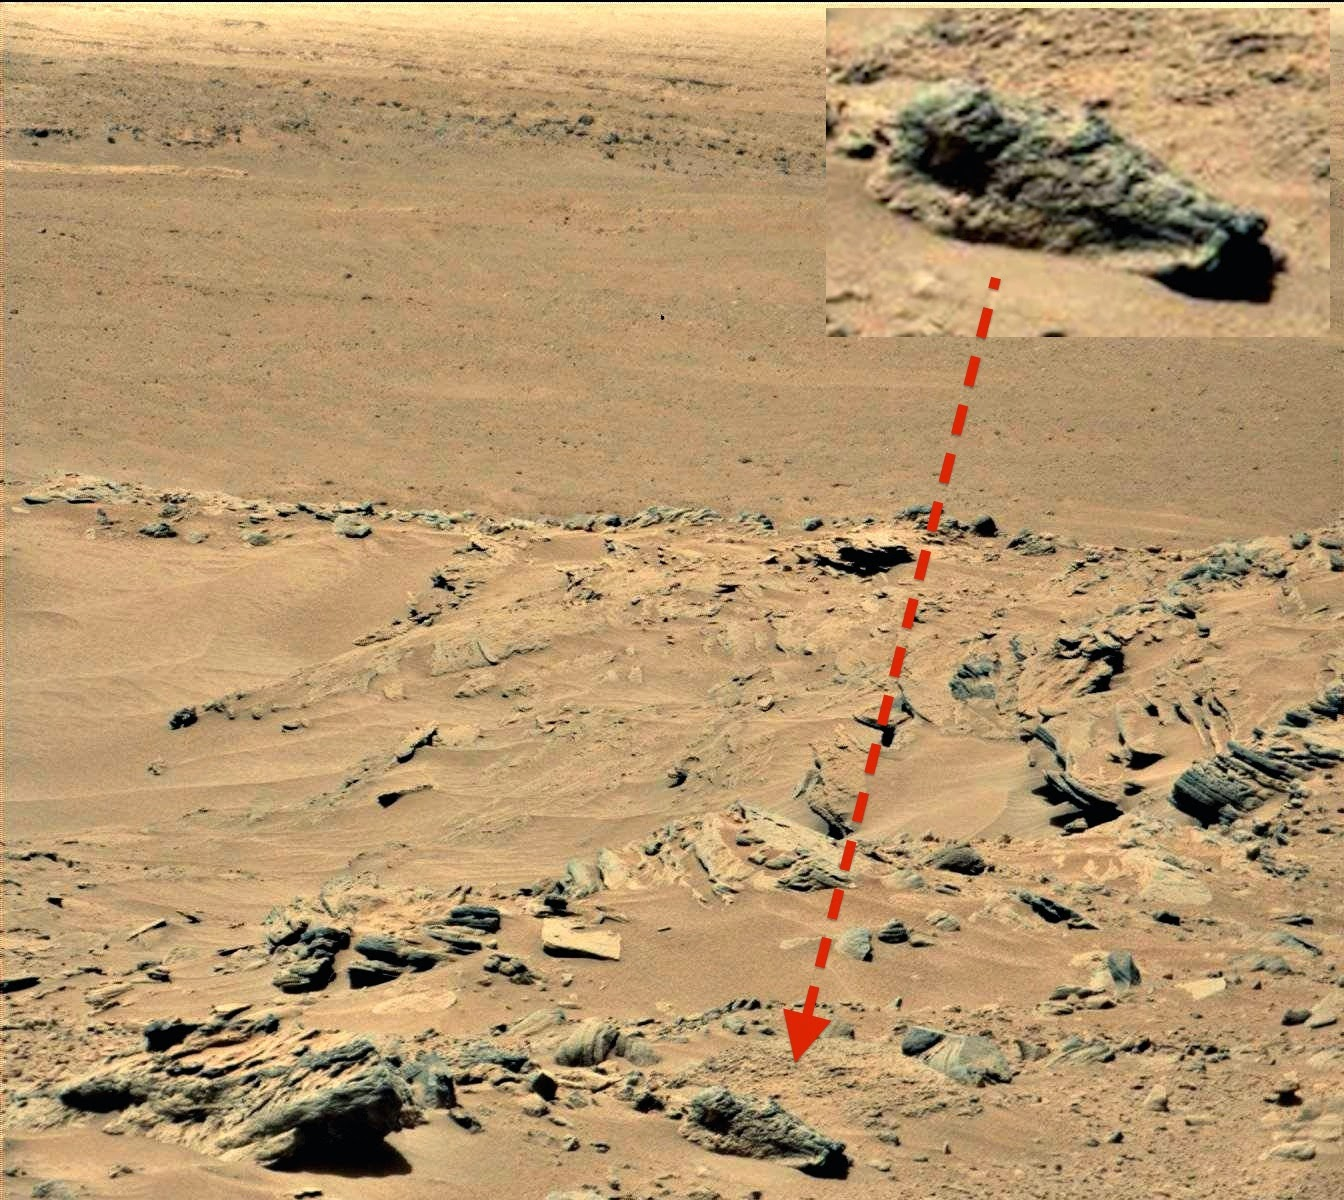 nasa curiosity latest news - photo #19